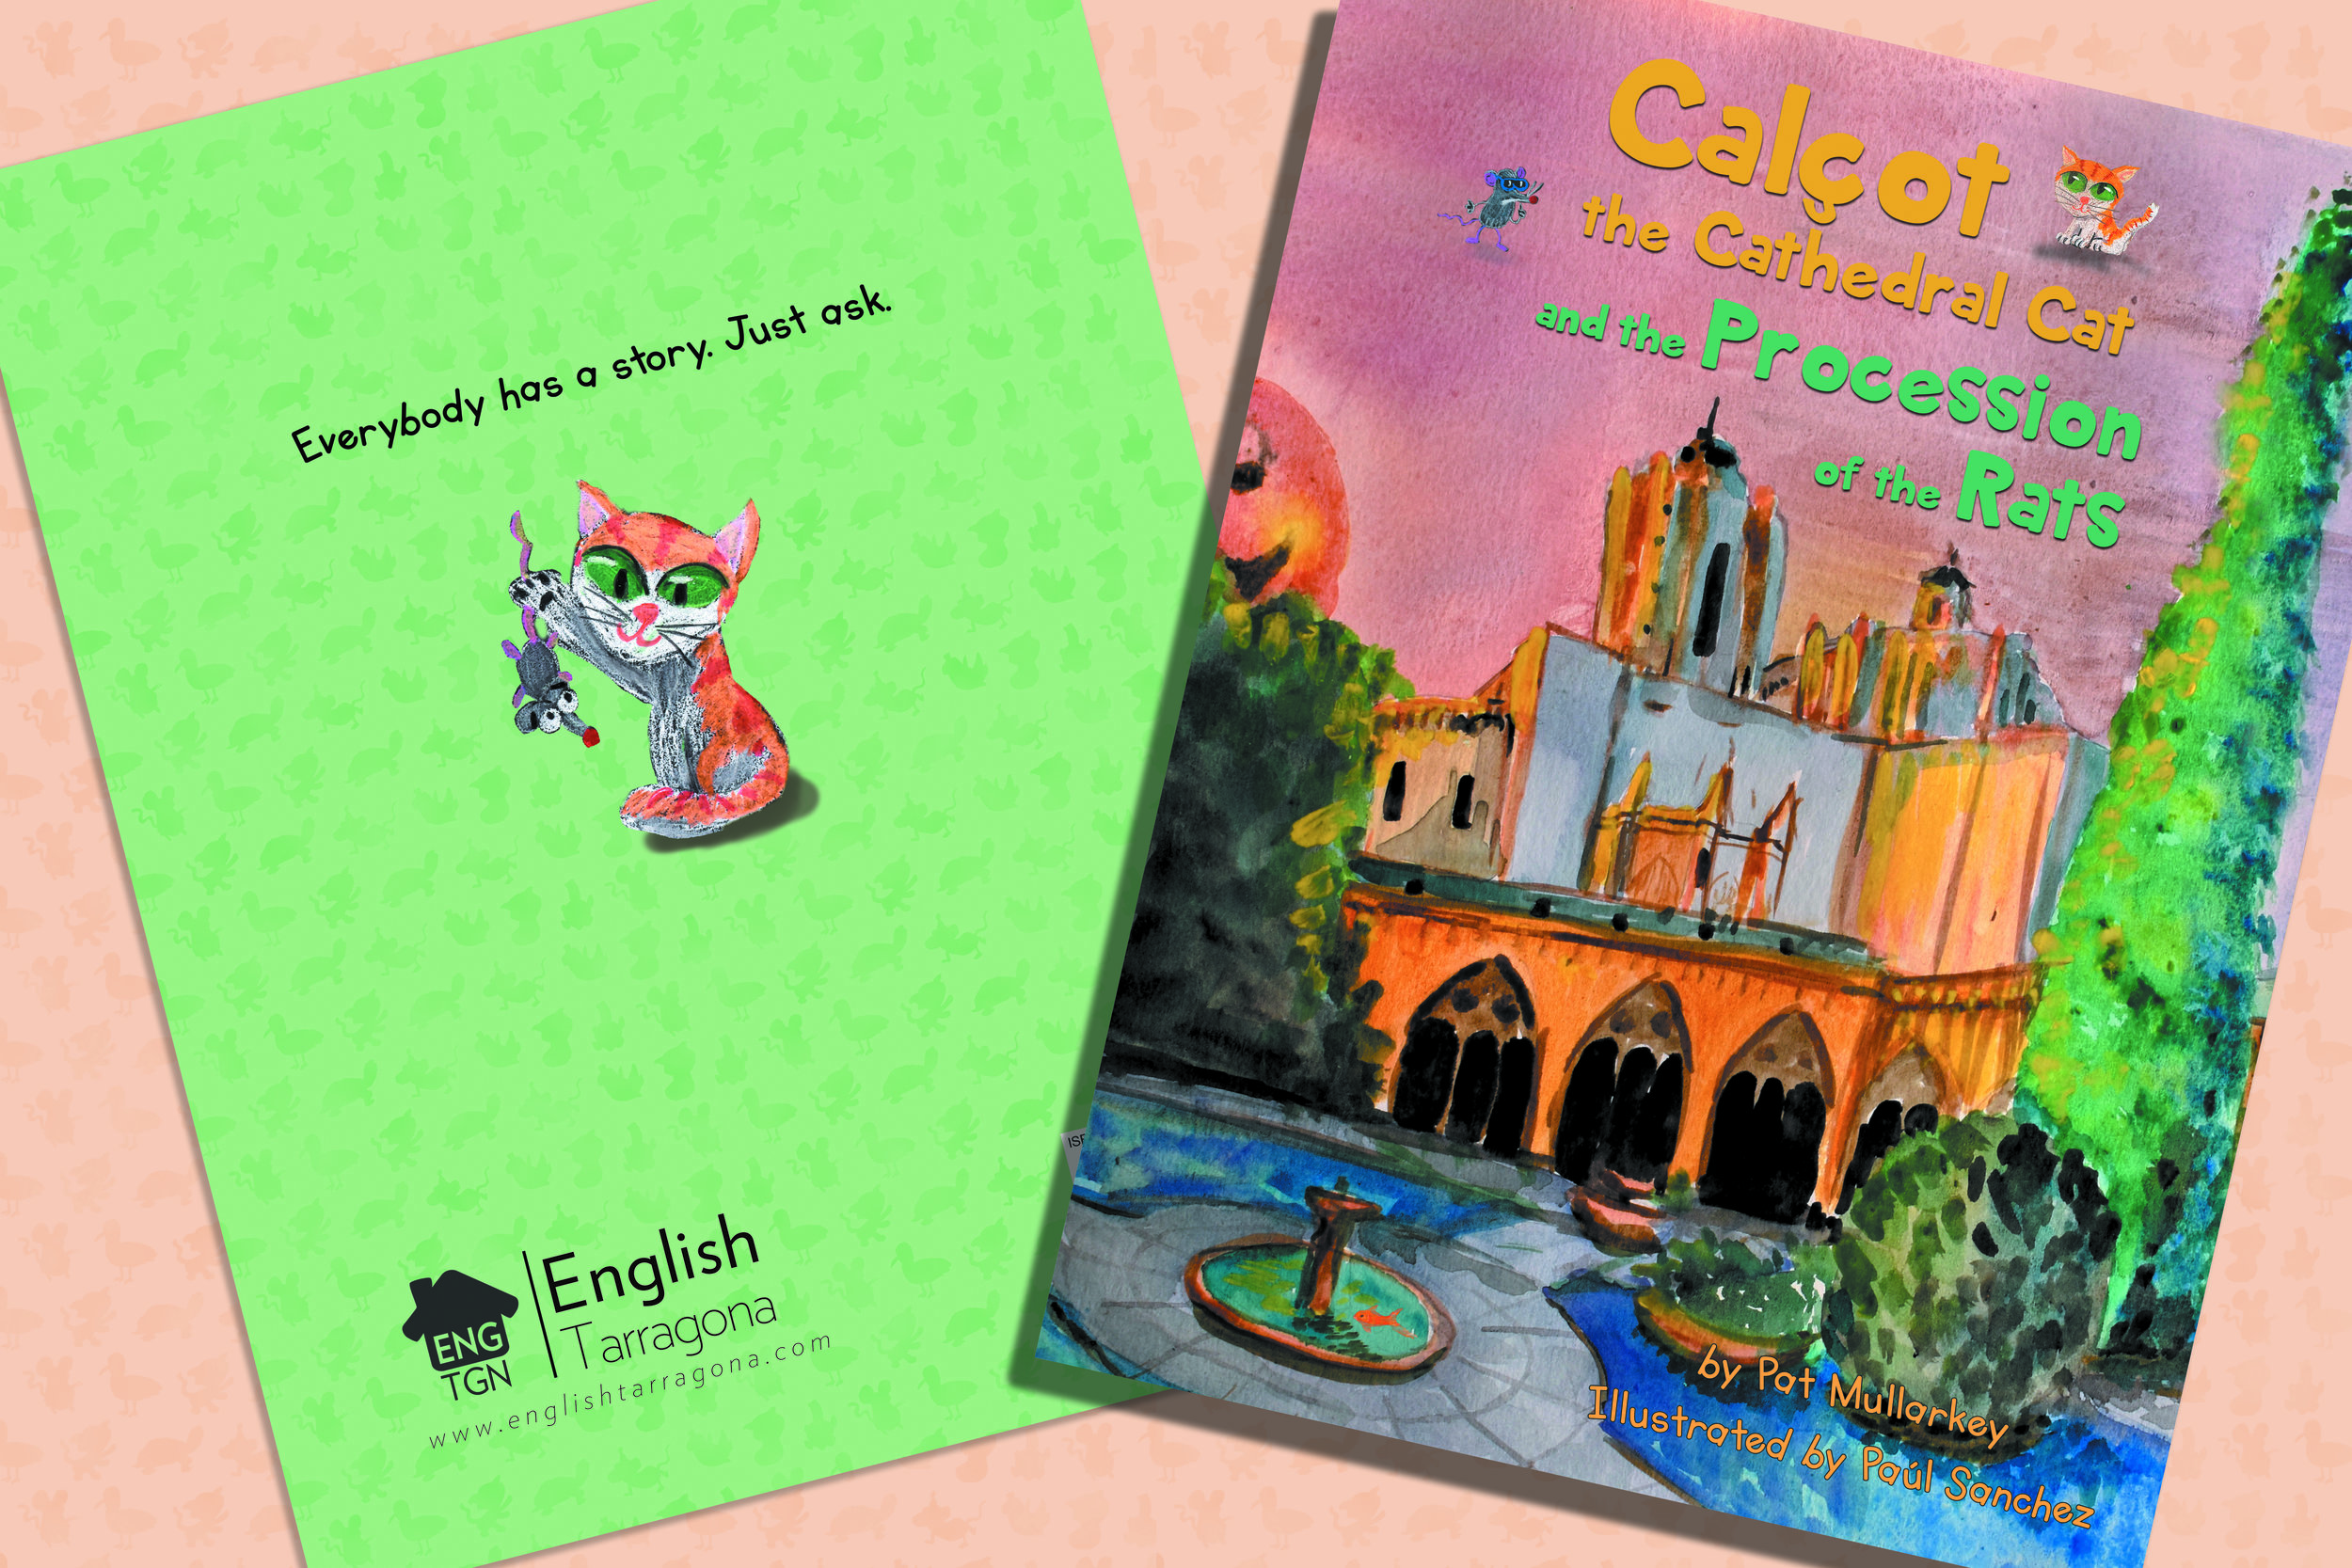 Calçot the Cathedral Cat and the Procession of the Rats - Available 23/4/2018